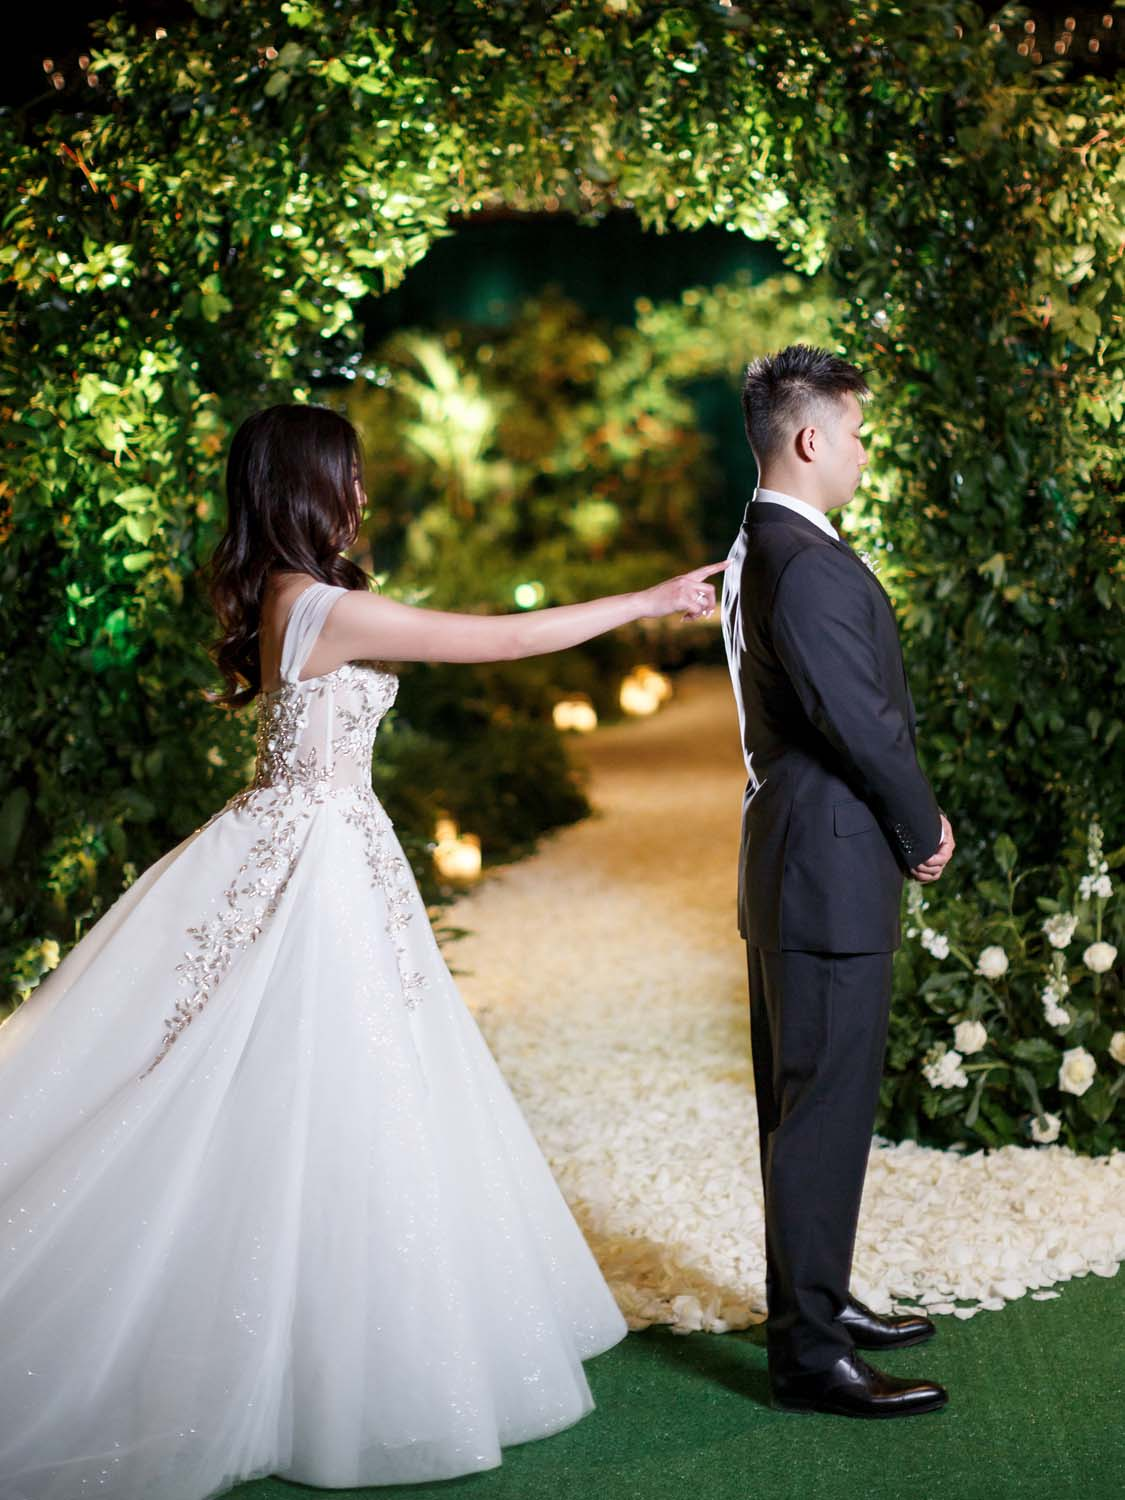 First look at the ceremony site. Luxury Las Vegas Wedding Planner Andrea Eppolito. www.andreaeppolitoevents.com. Photo by Rene Zadori.